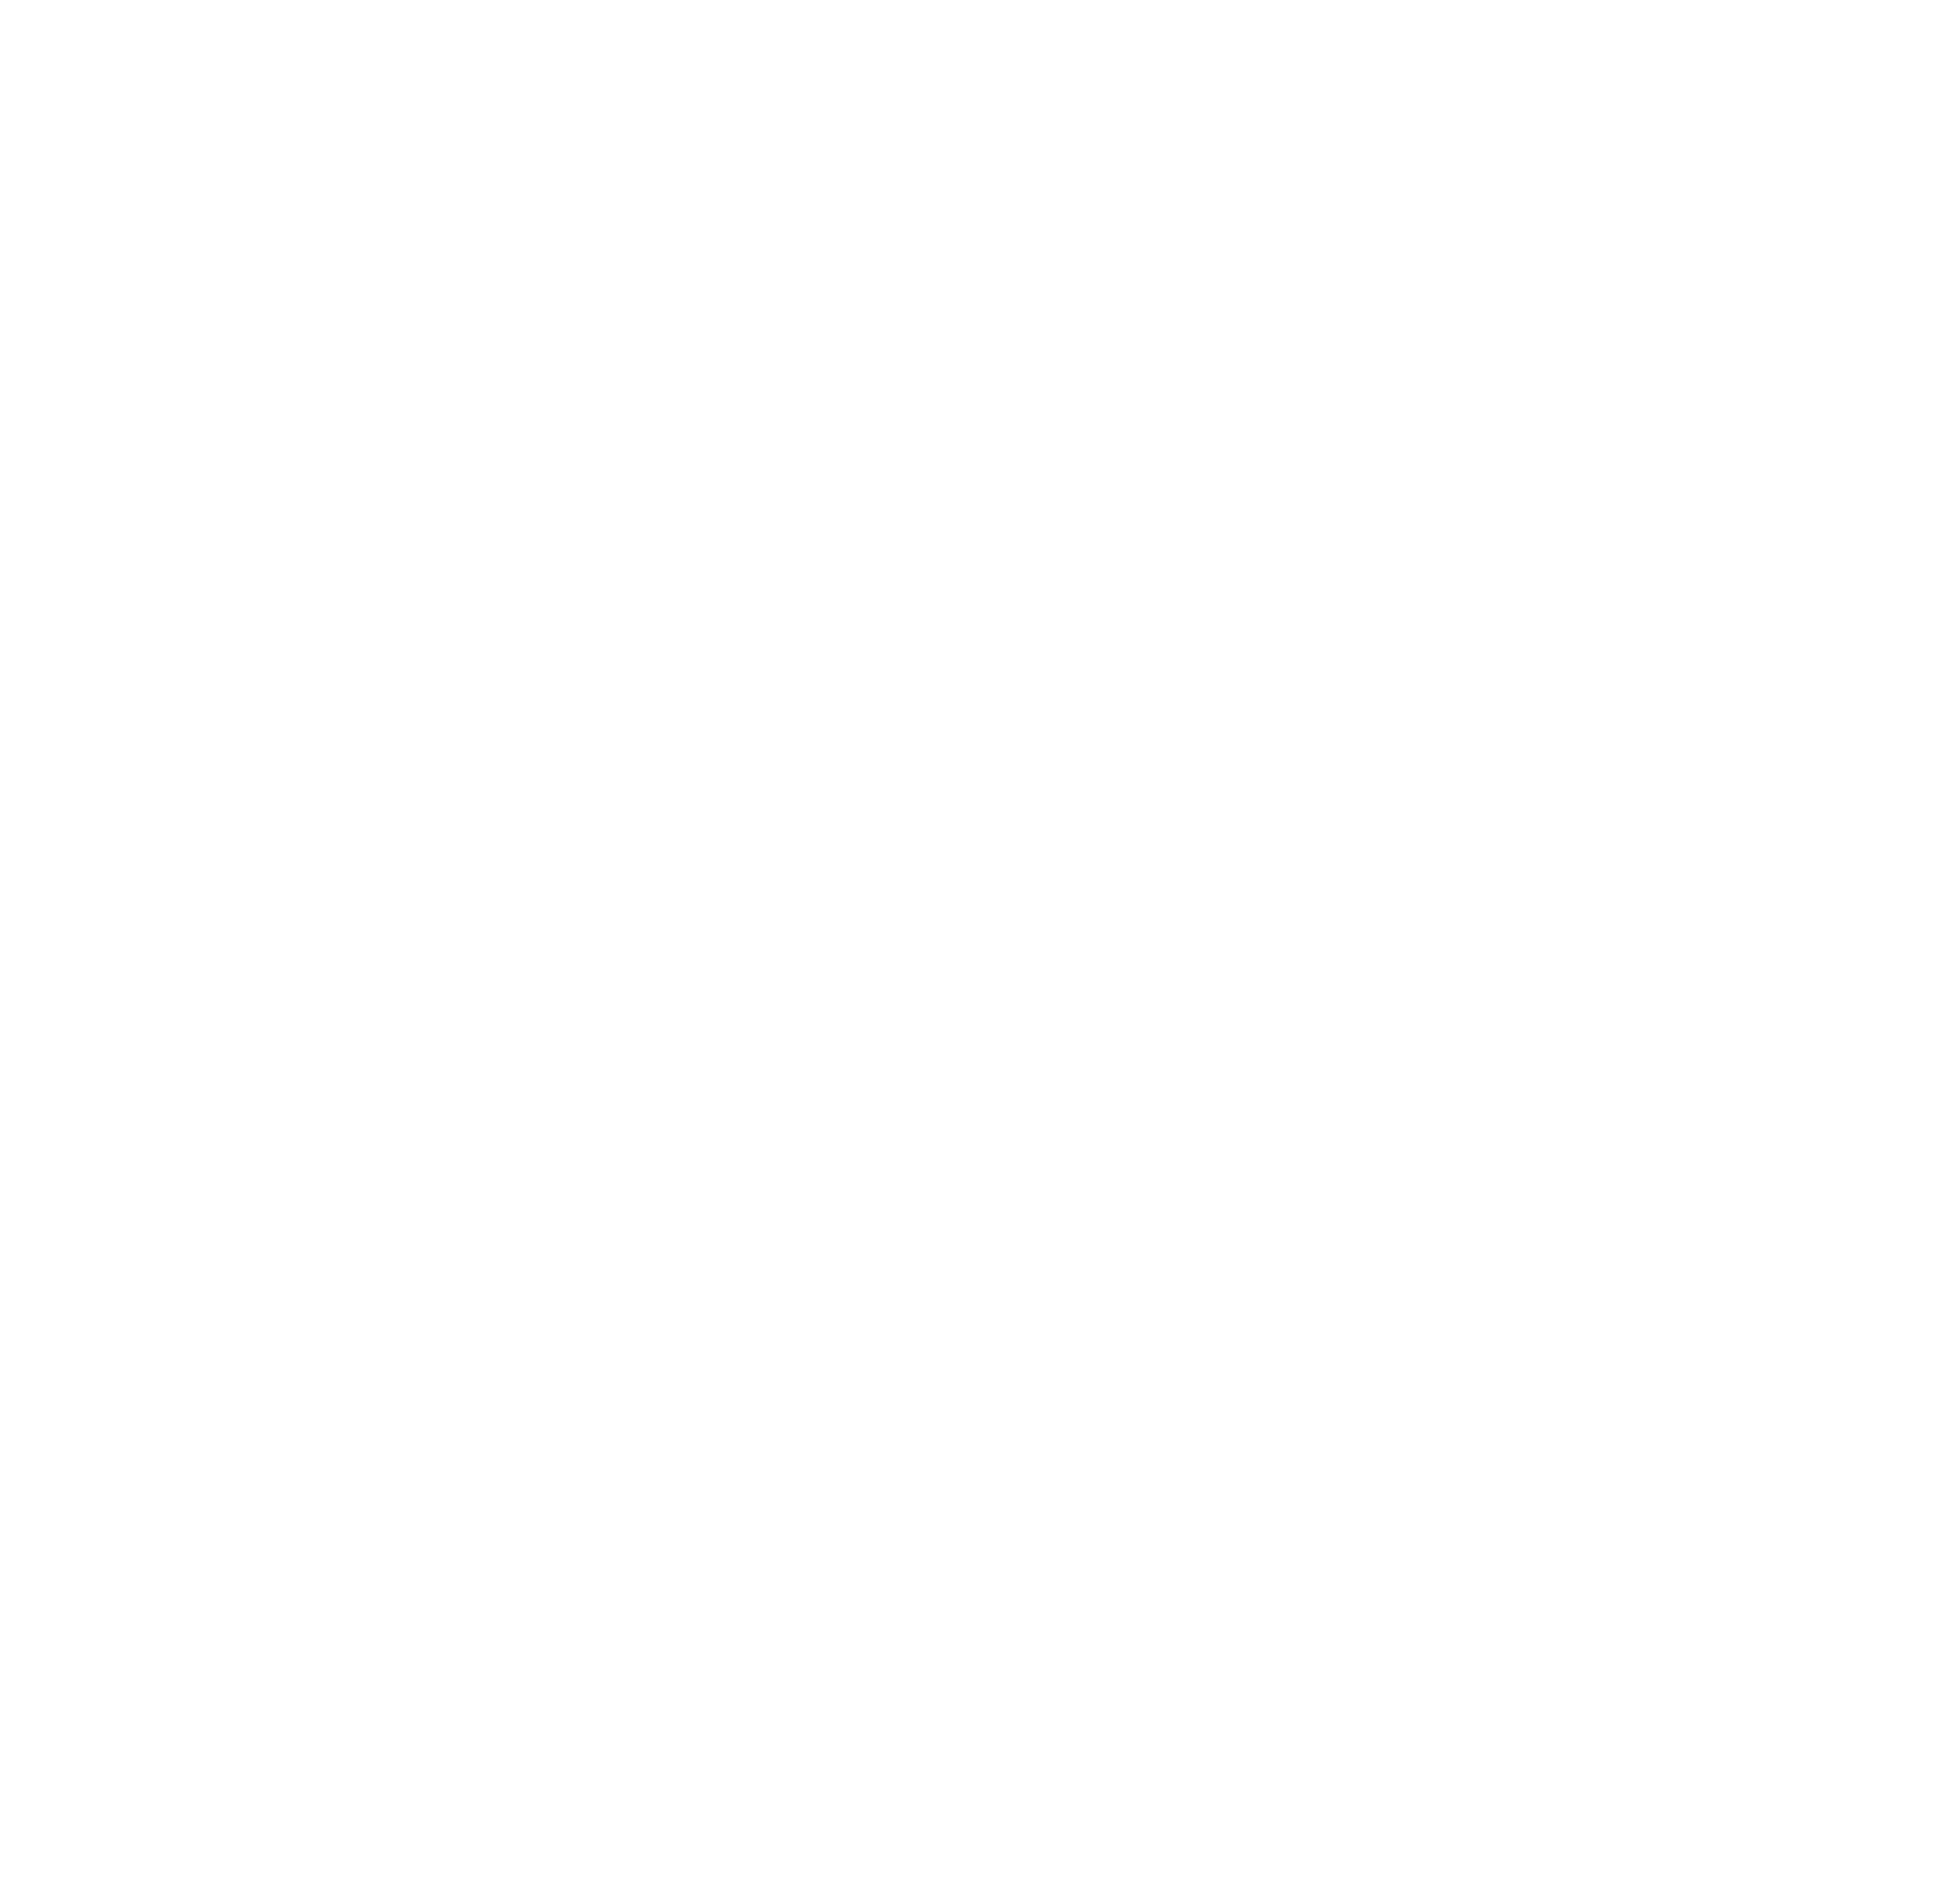 Merry christmas transparent png. Stamp clipart high quality